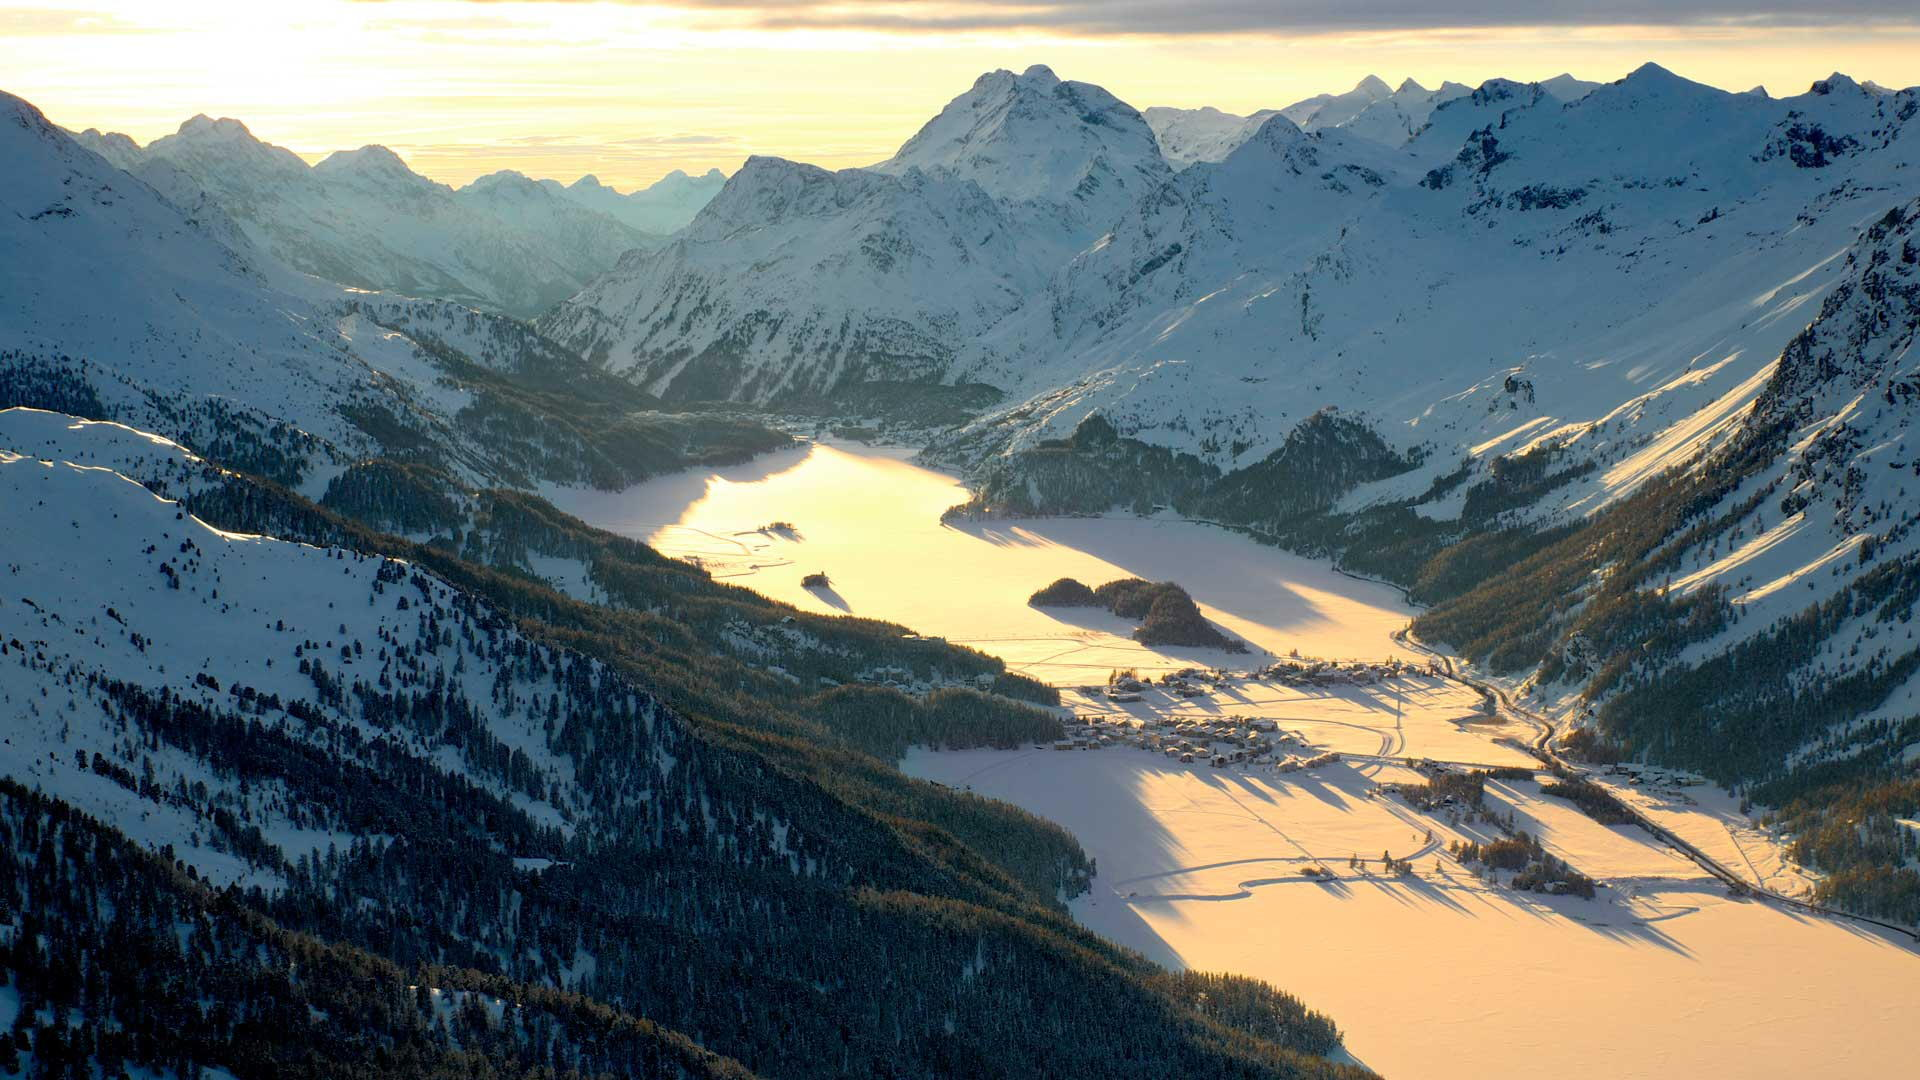 Luxury ski accommodation in St. Moritz – book with the experts